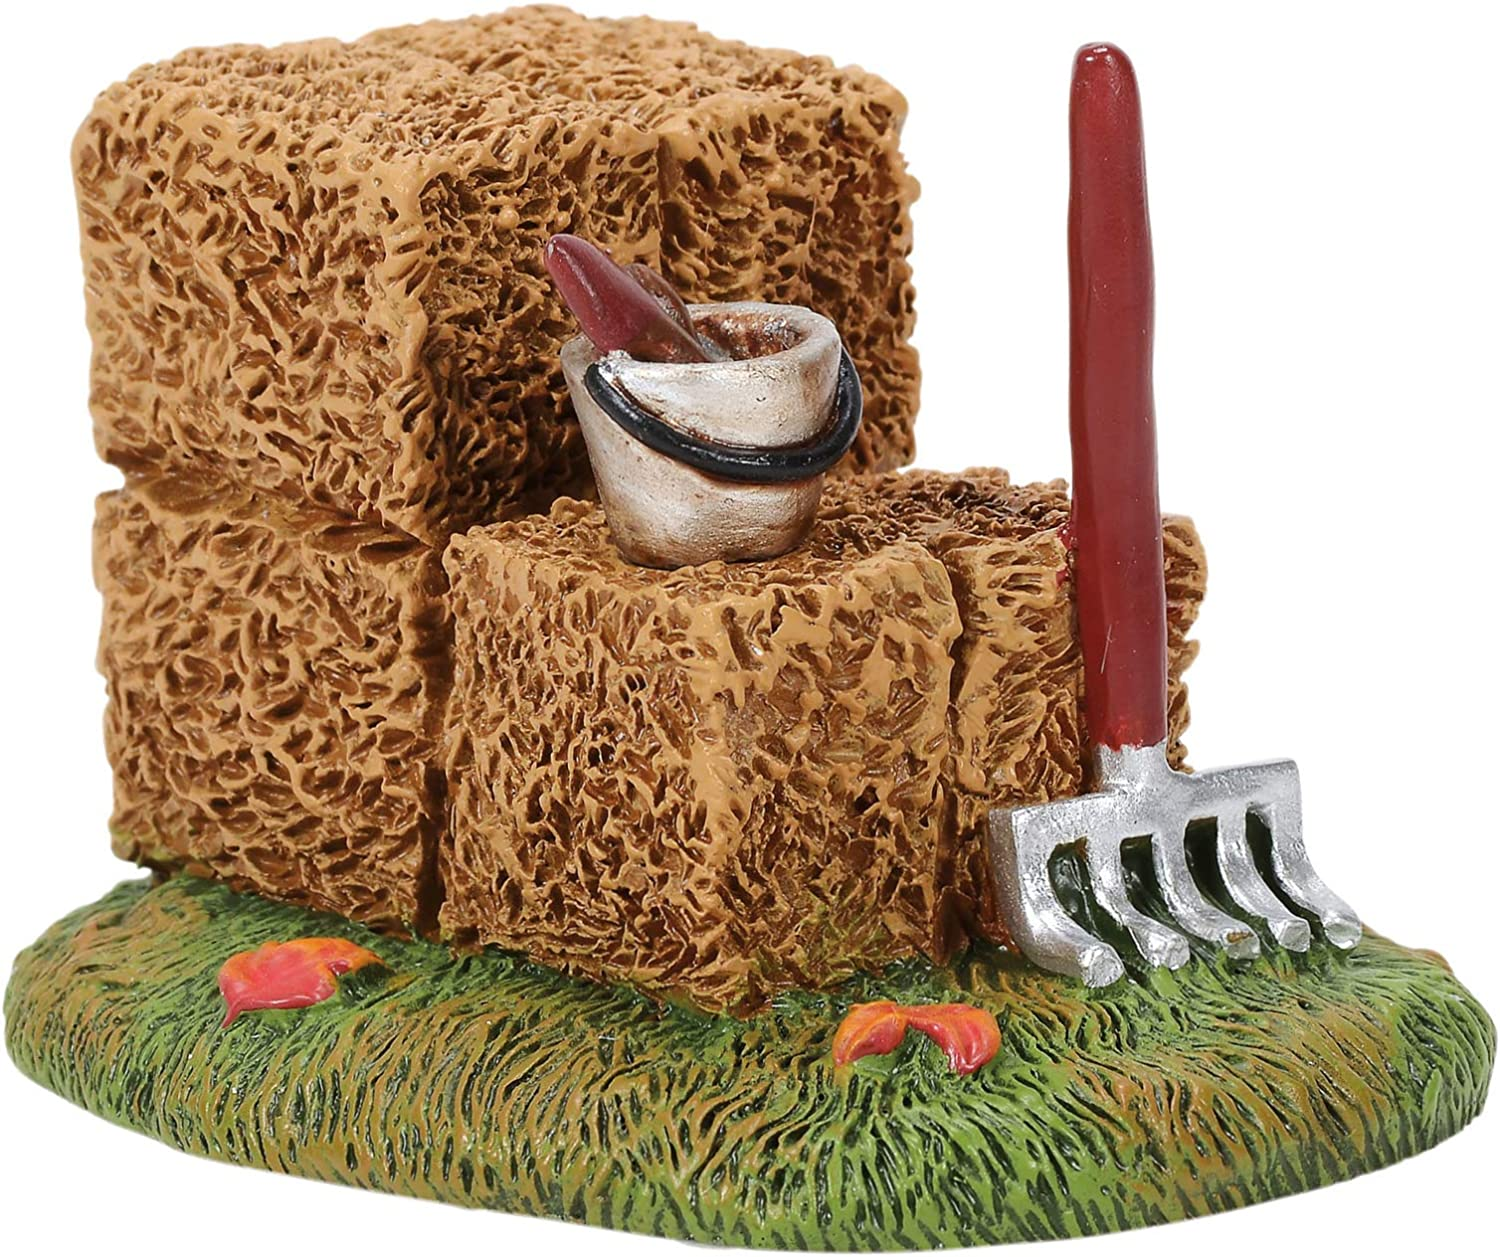 Department 56 Village Collection Accessories Fall Harvest Farming Chores Figurine, 2 Inch, Multicolor